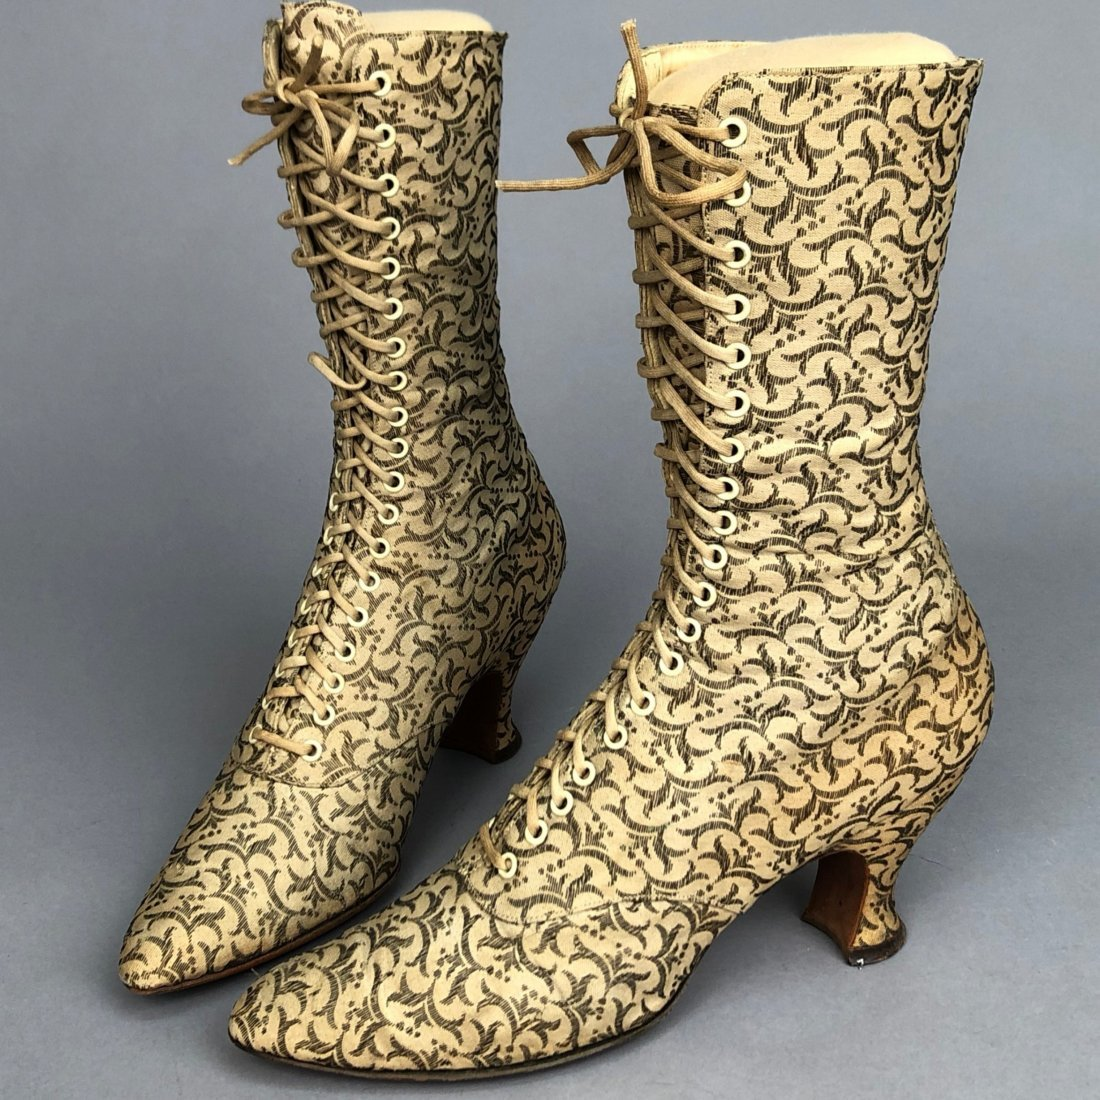 METALLIC BROCADE LACE-UP BOOTS, c. 1895